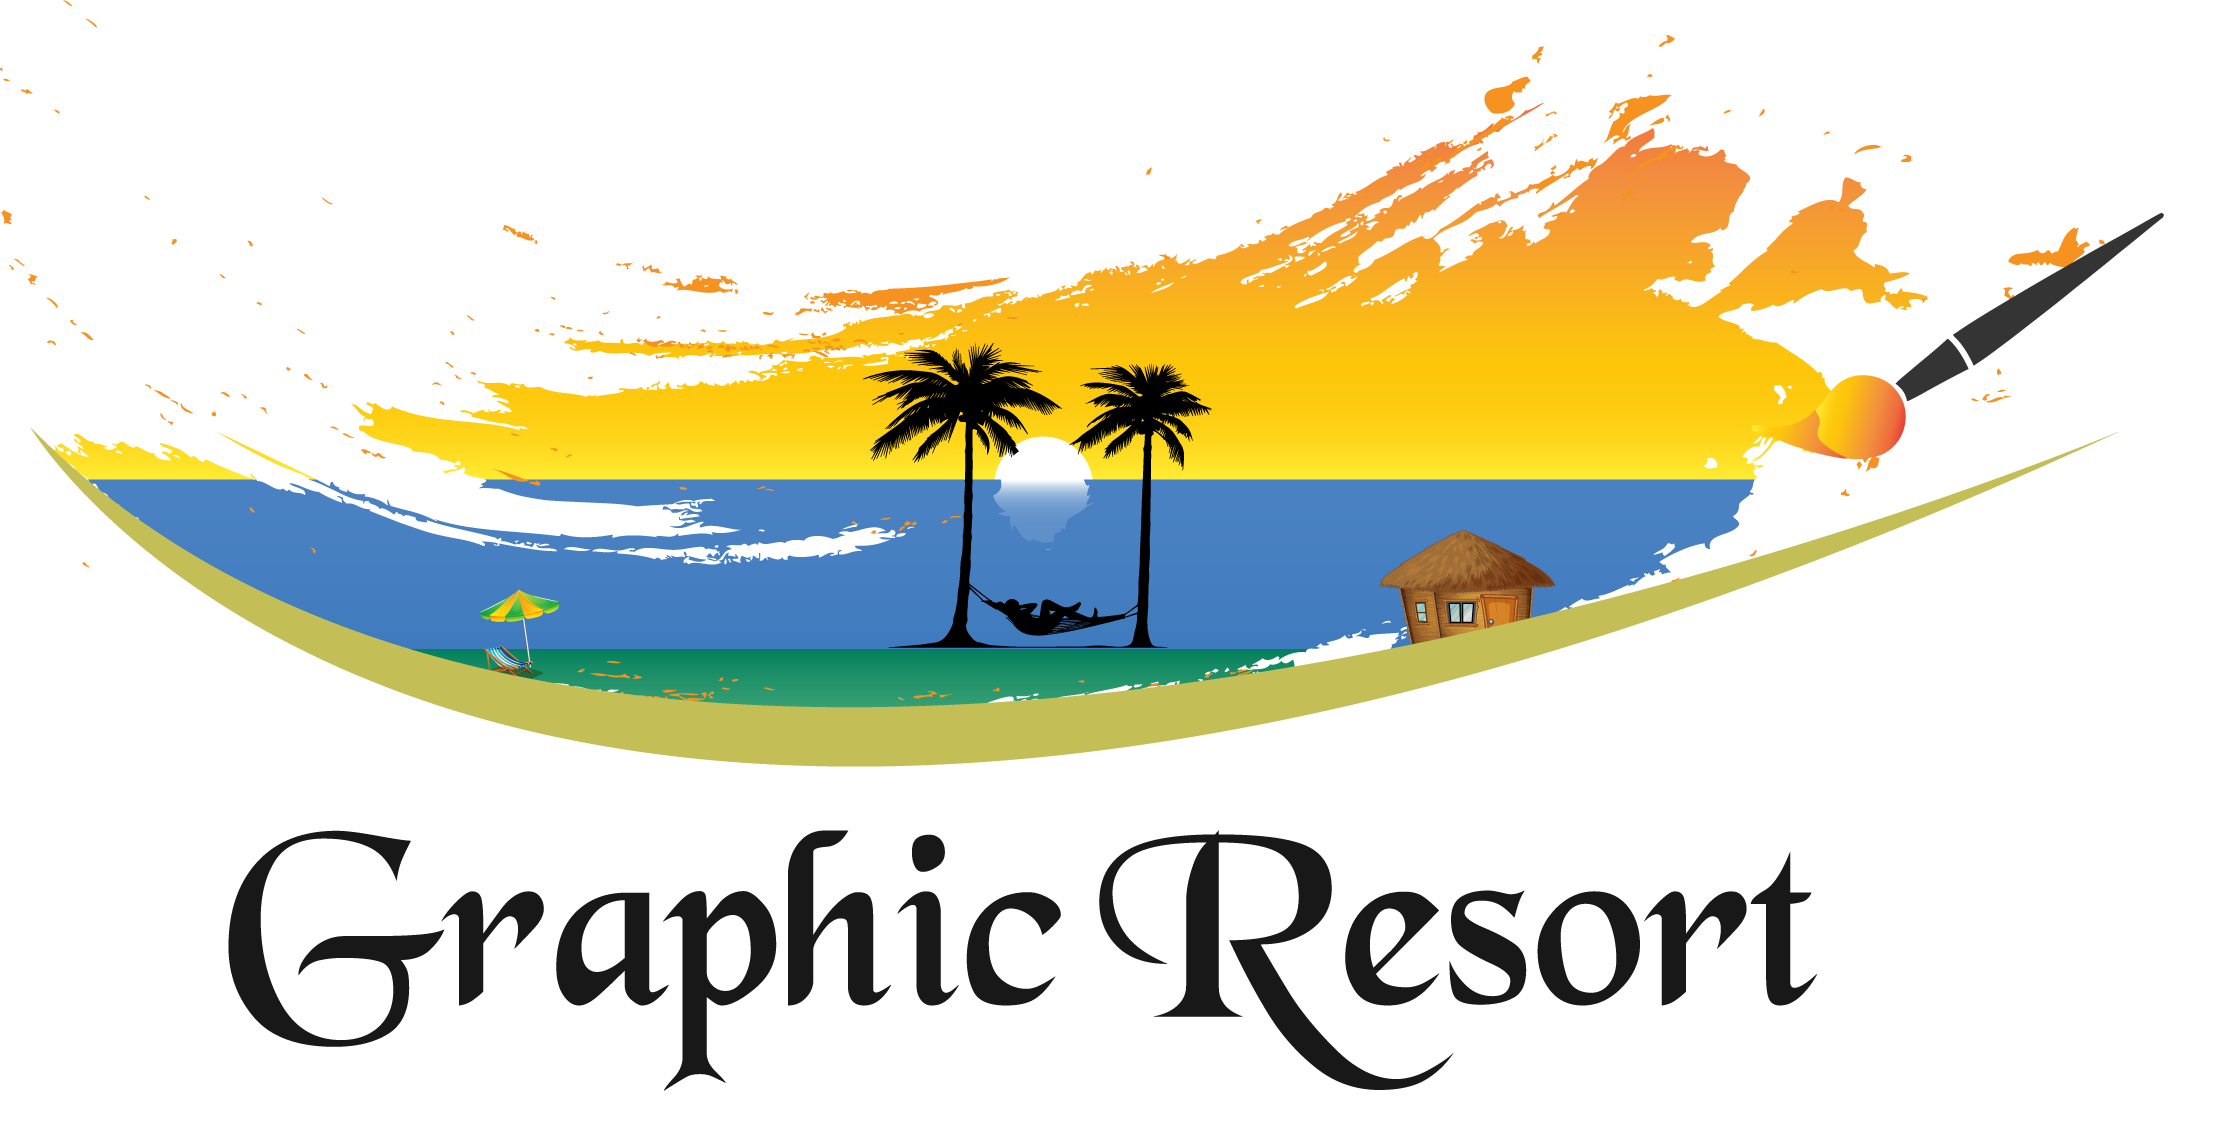 Graphicresort